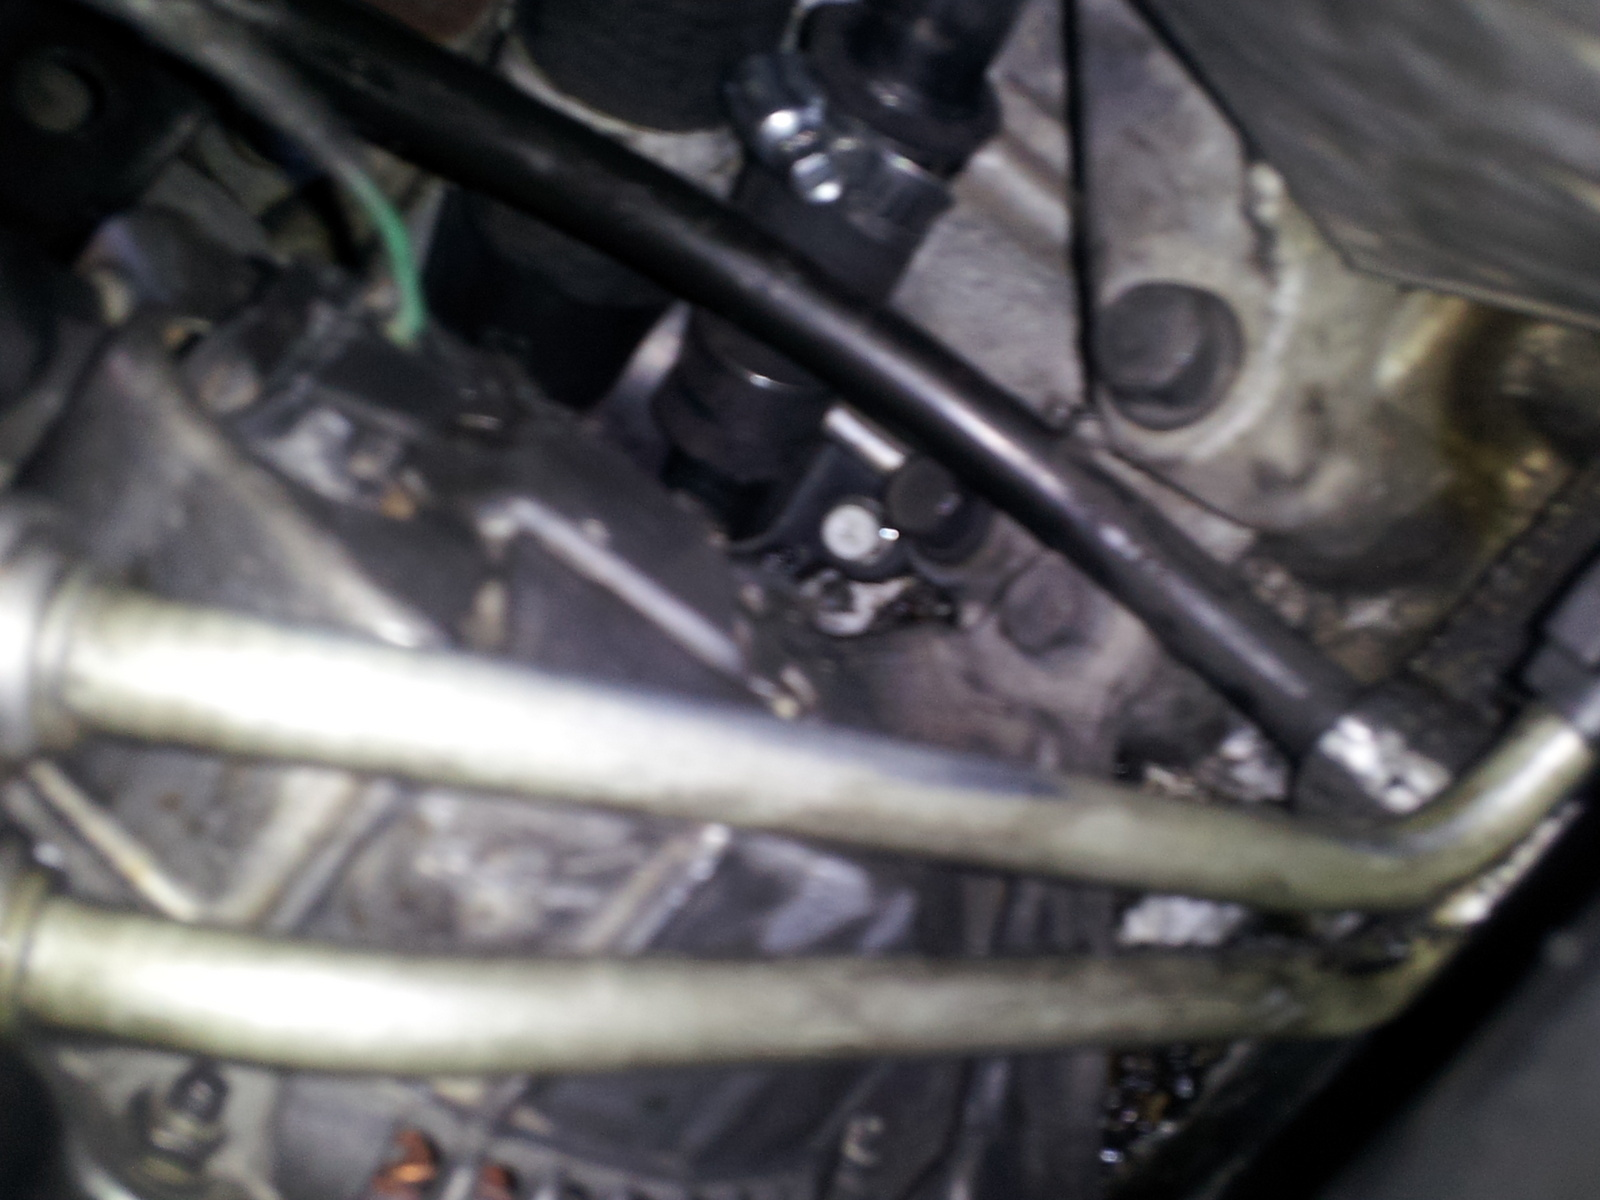 Dodge Intrepid Questions 27 Engine Have A Little Hole That Keeps Block Water Jacket Diagram Leaking Coolant From The Motor Its Not Cracked And There Is No Grooves So Screw Missing We Think It Might